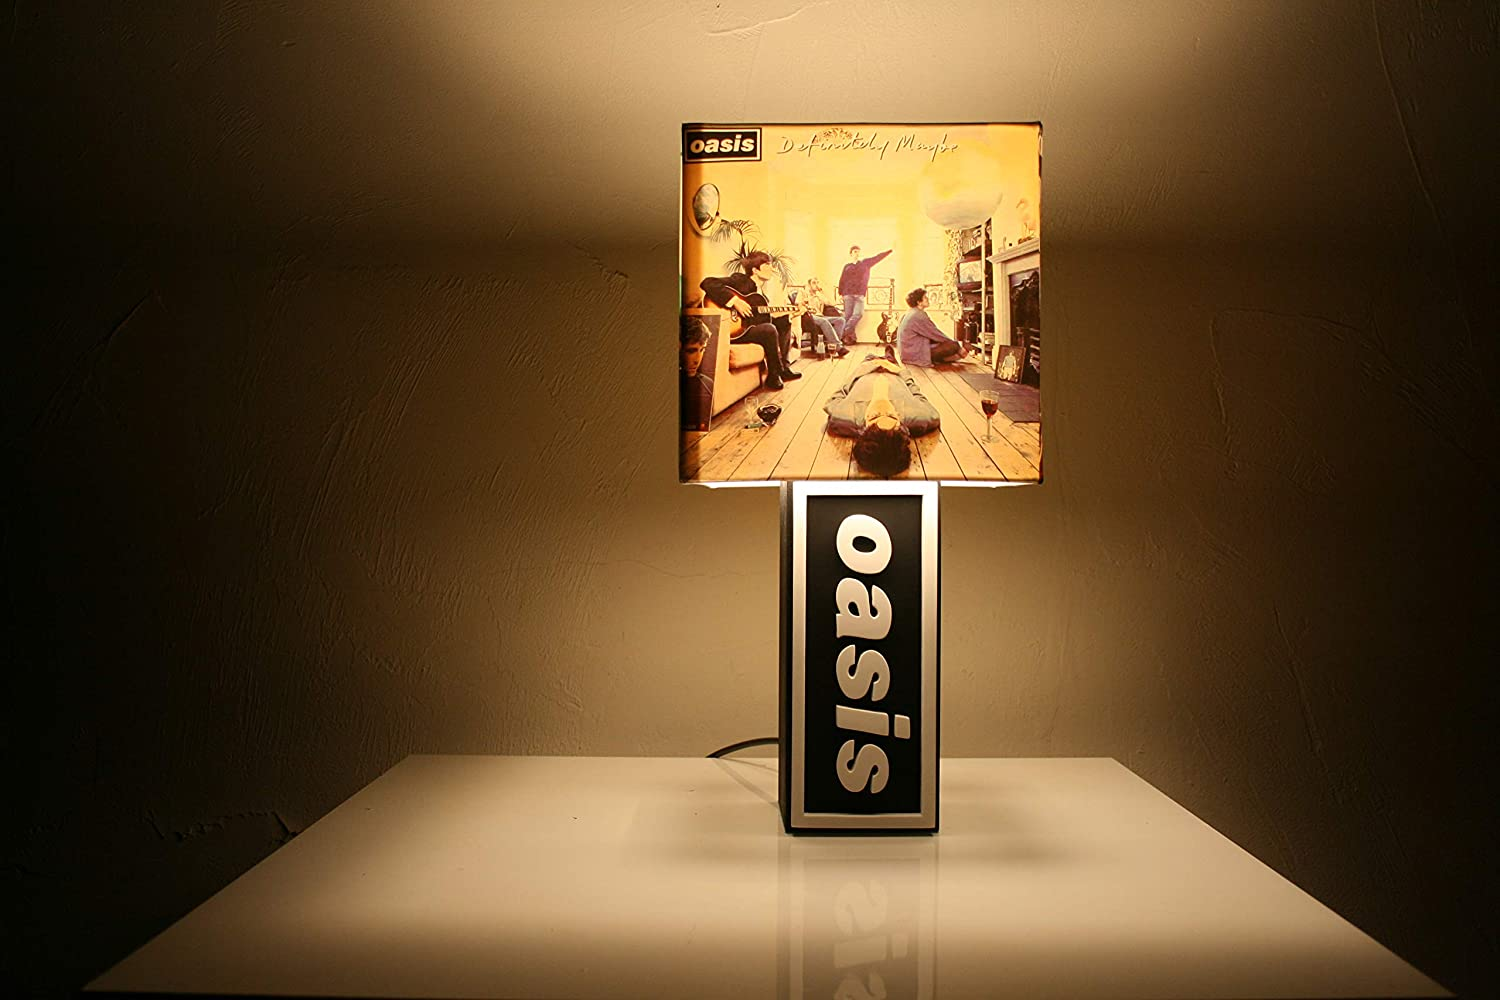 Handmade Oasis Lamp + Album Cover Shade - Definitely Maybe, What's the Story, Be Here Now, Liam Gallagher What' s the Story